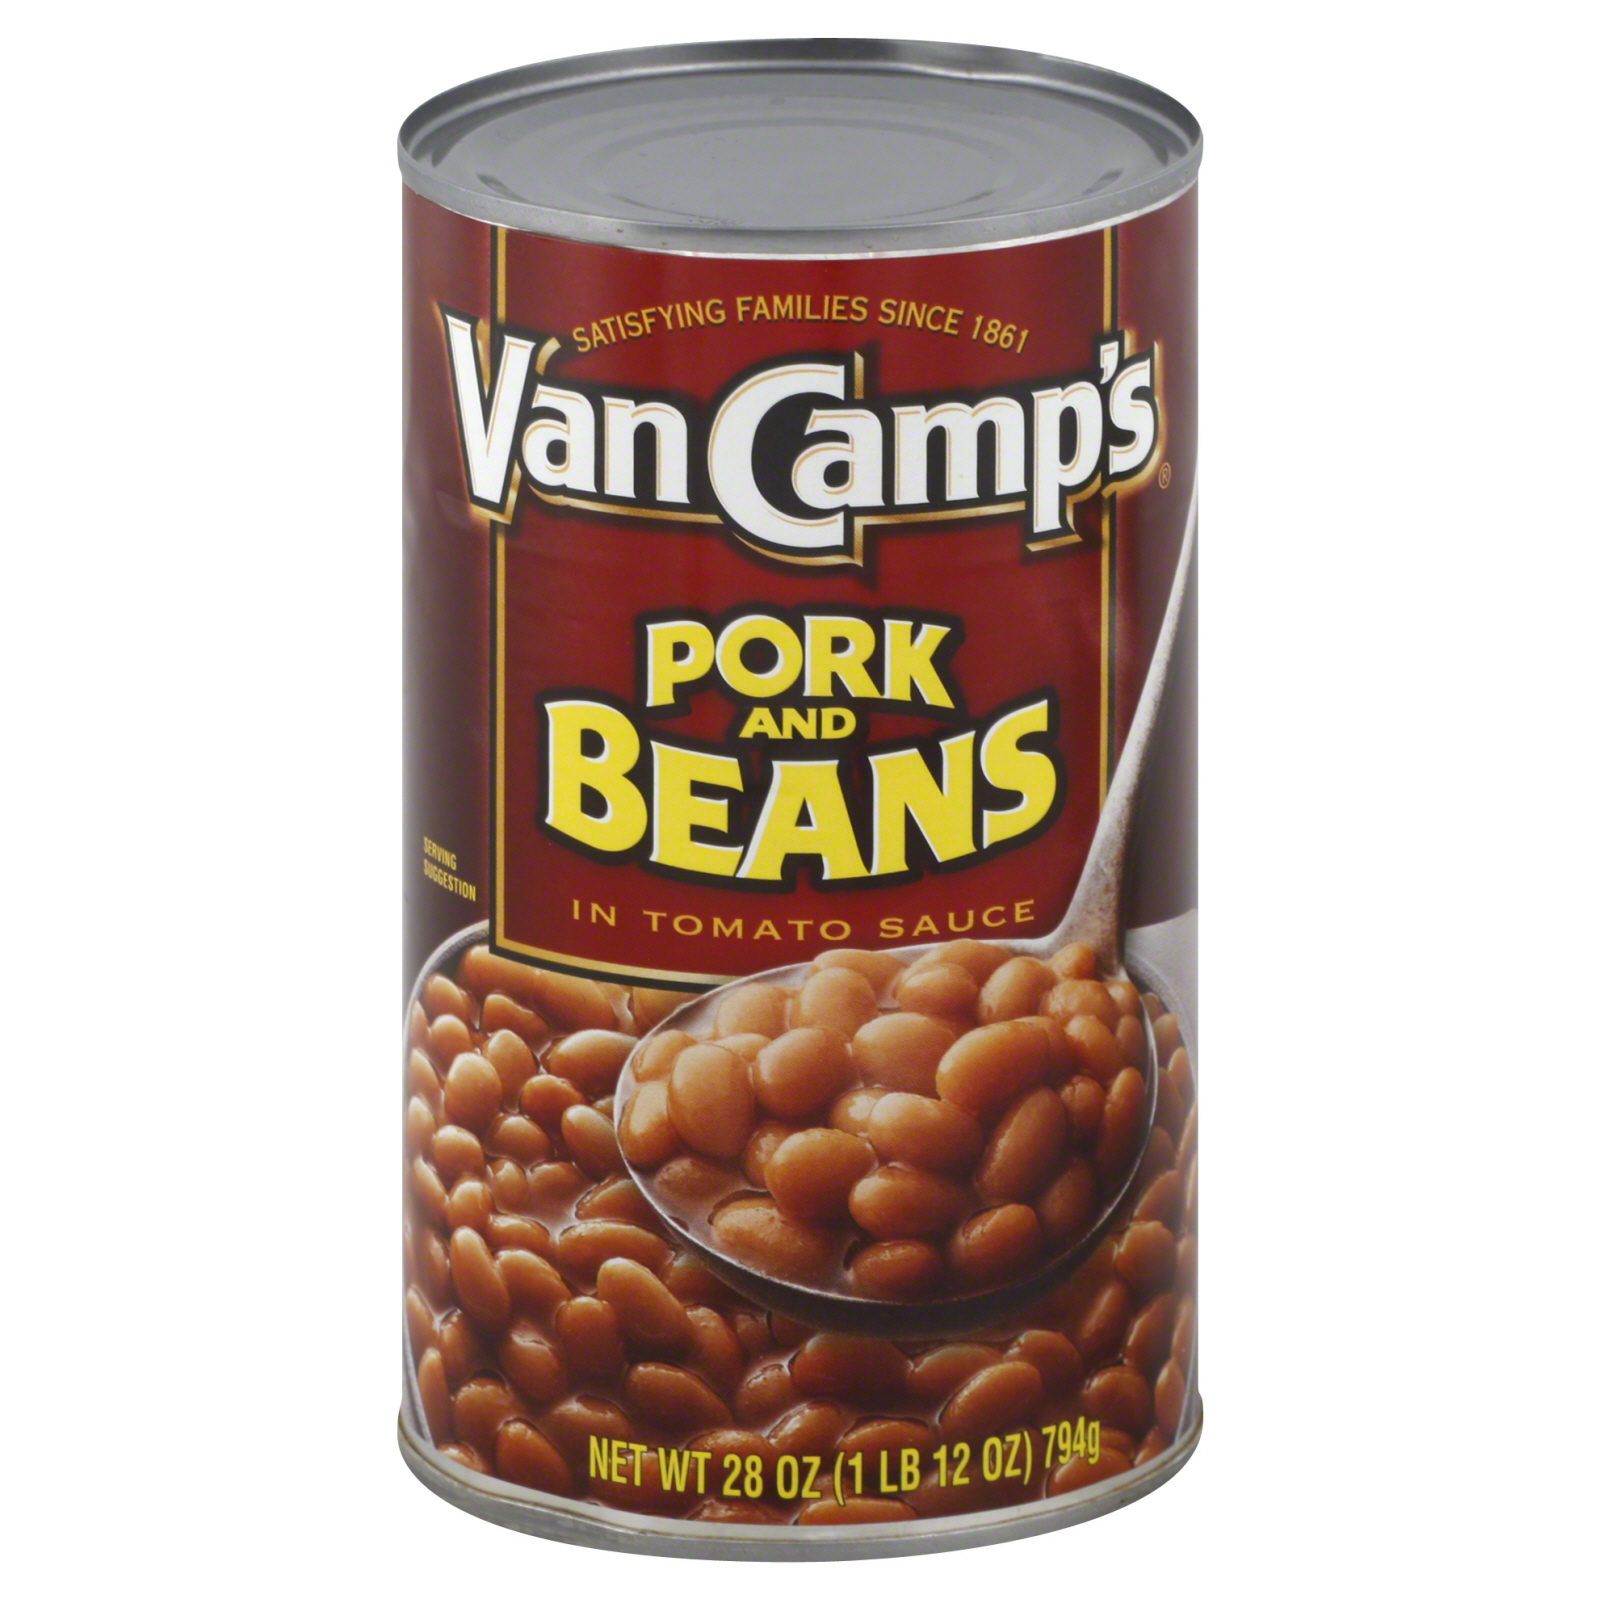 Van Camp's  Pork and Beans, in Tomato